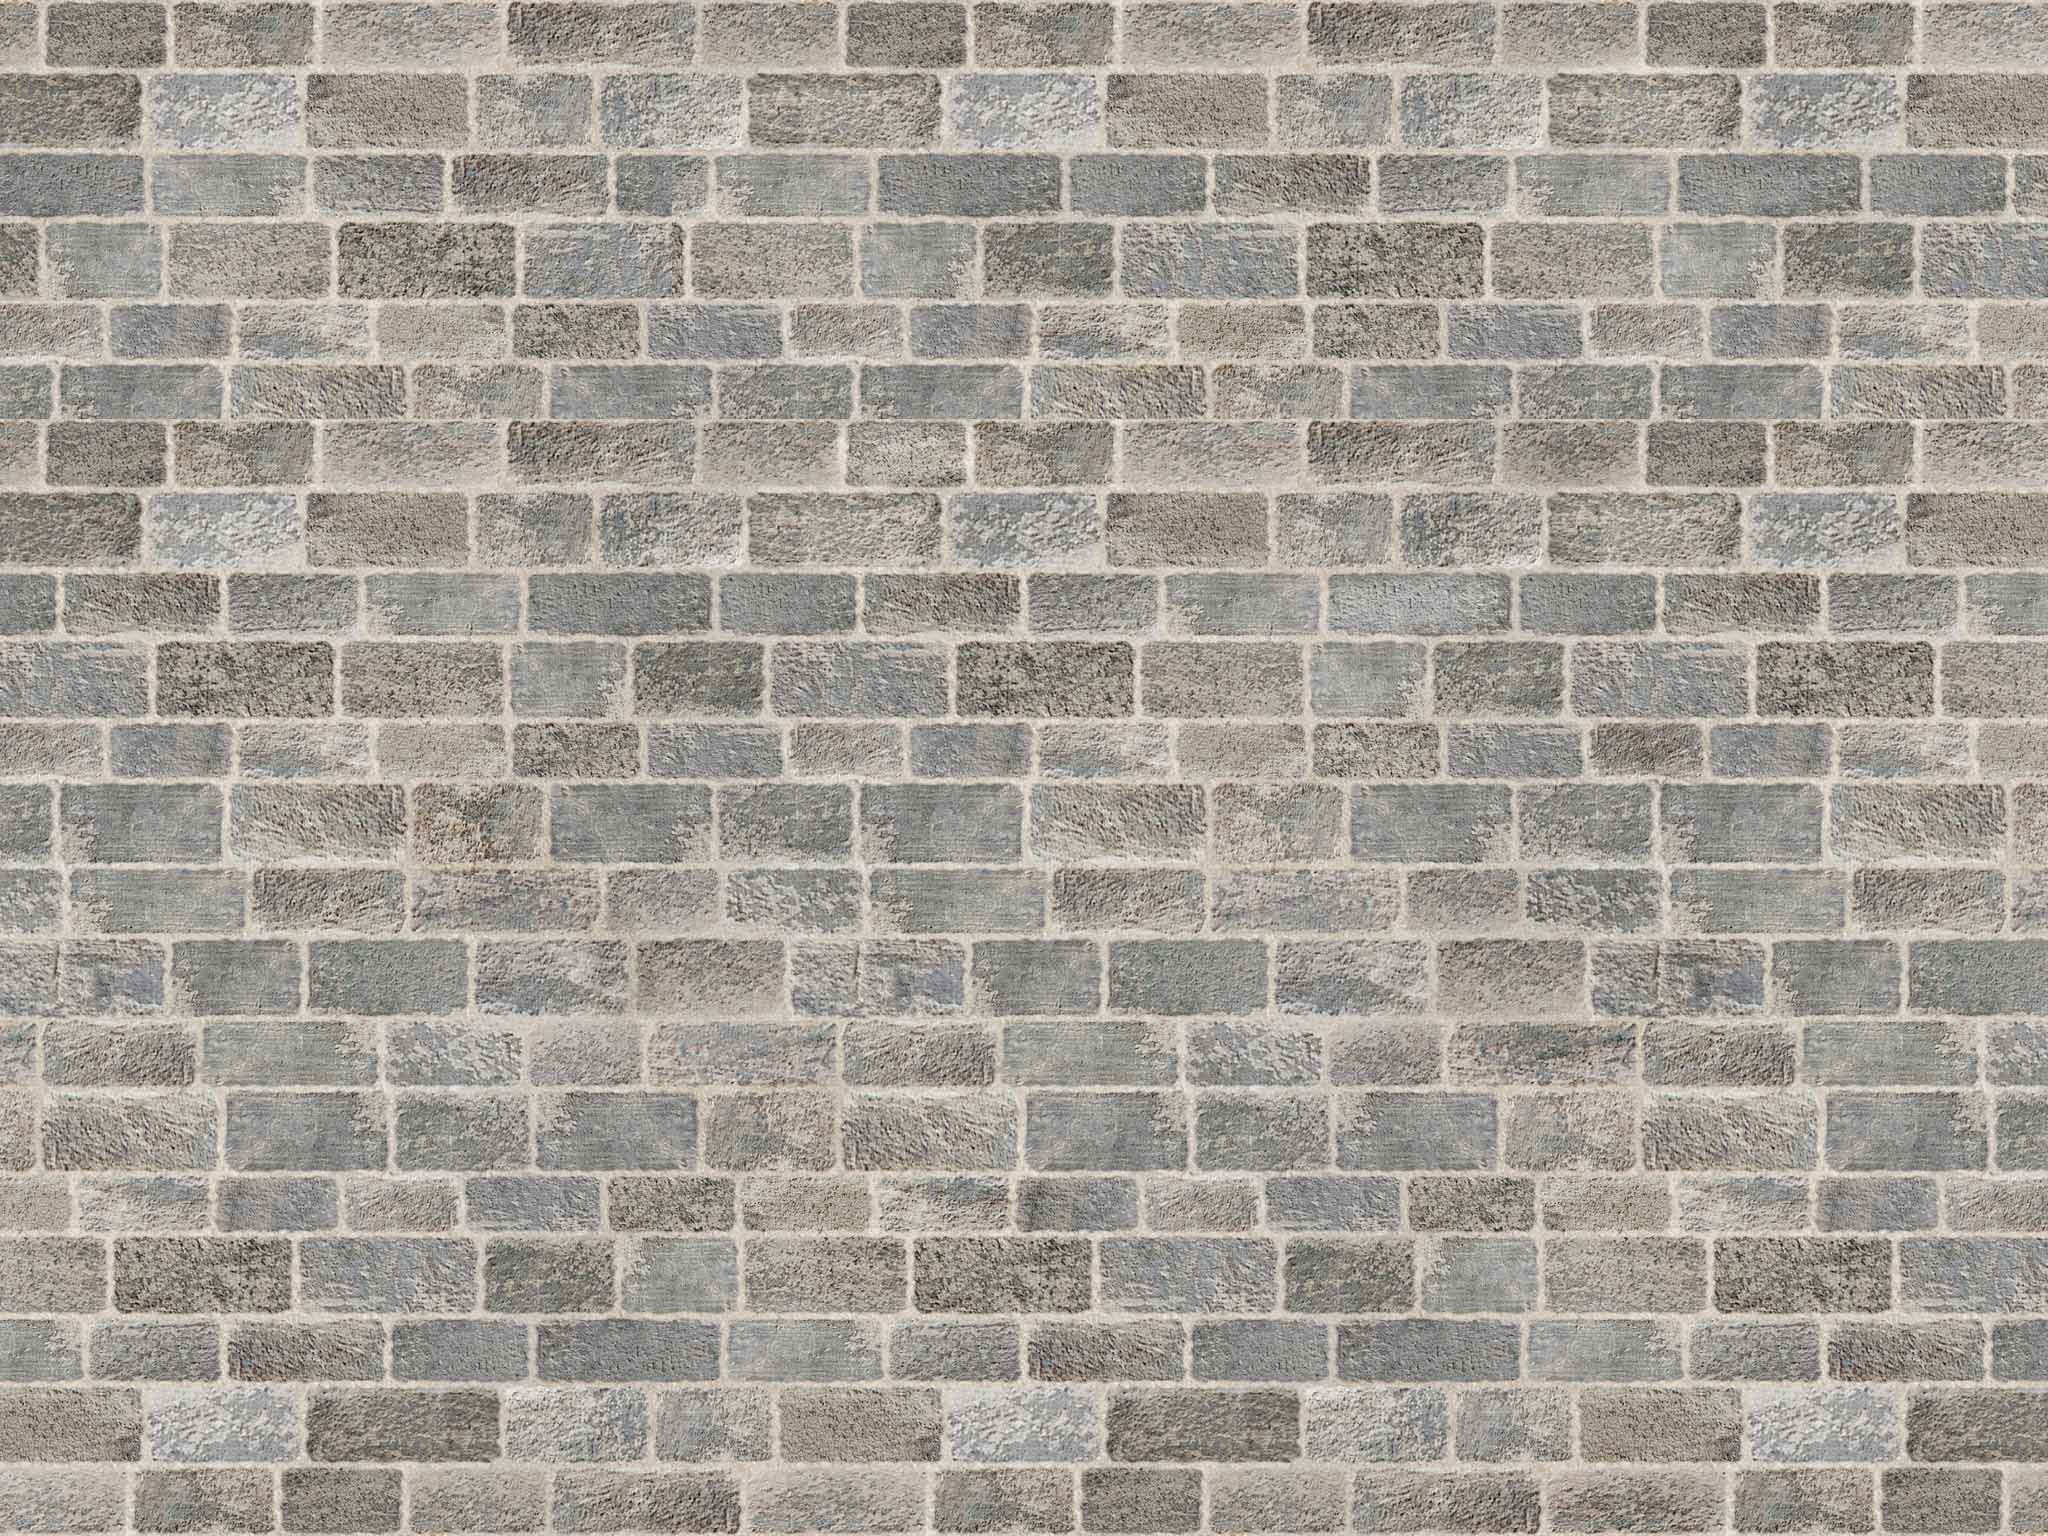 Wall Bricks, Background, Rock, Wall, Tile, HQ Photo